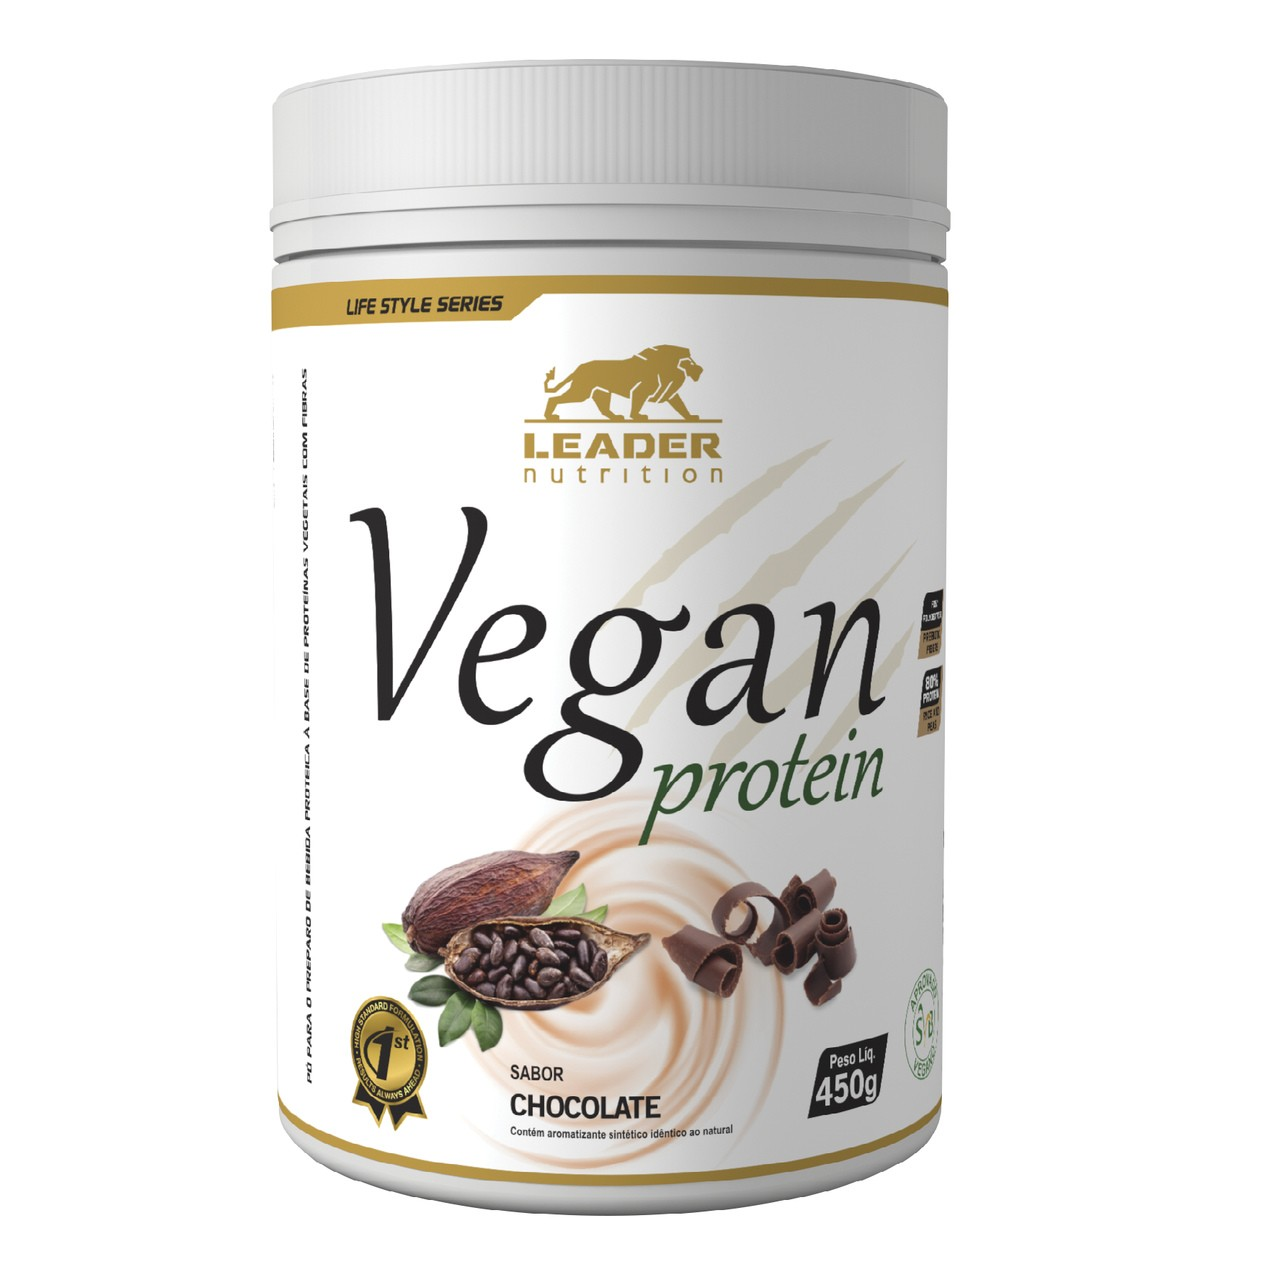 Vegan Protein (450g) - Leader Nutrition